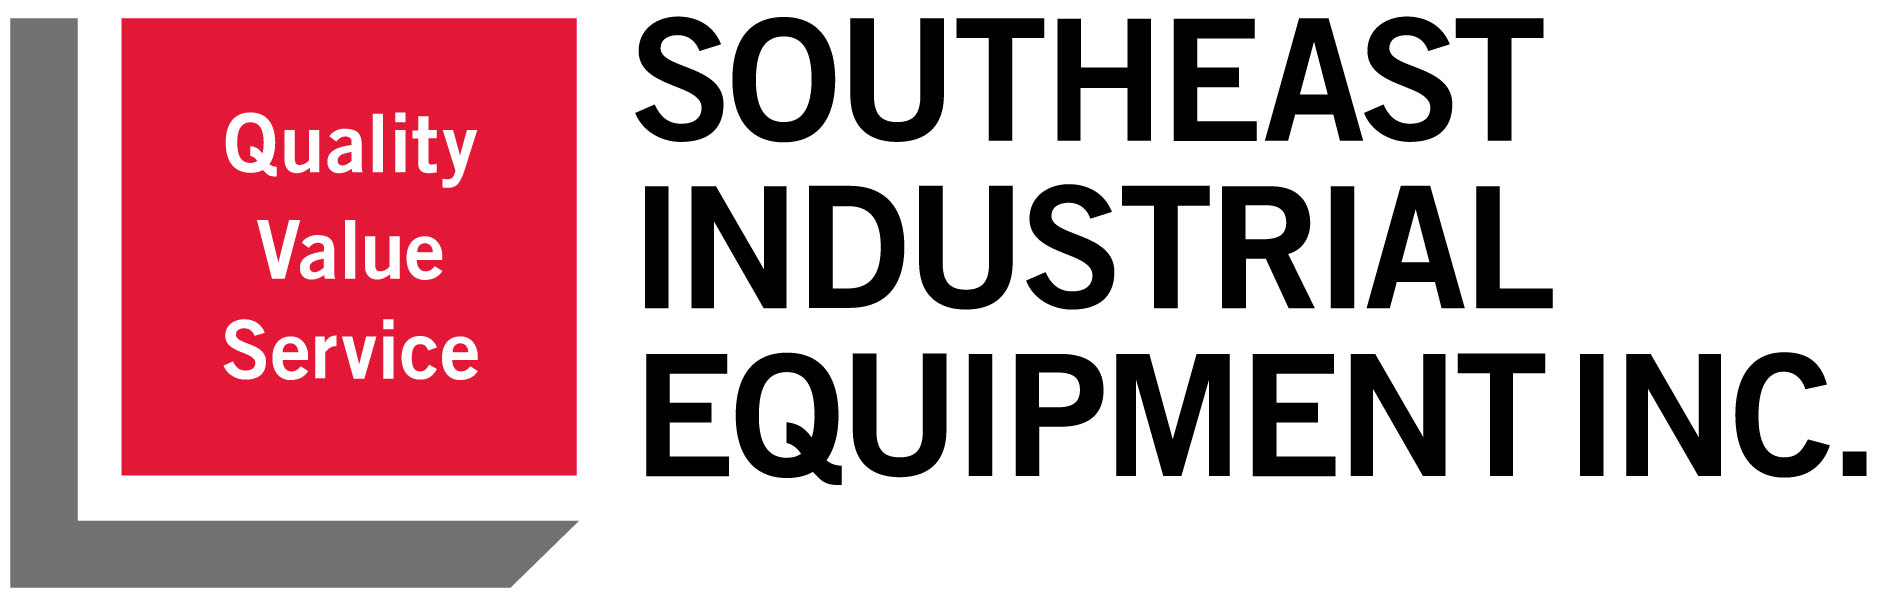 Southeast Industrial Equipment Inc